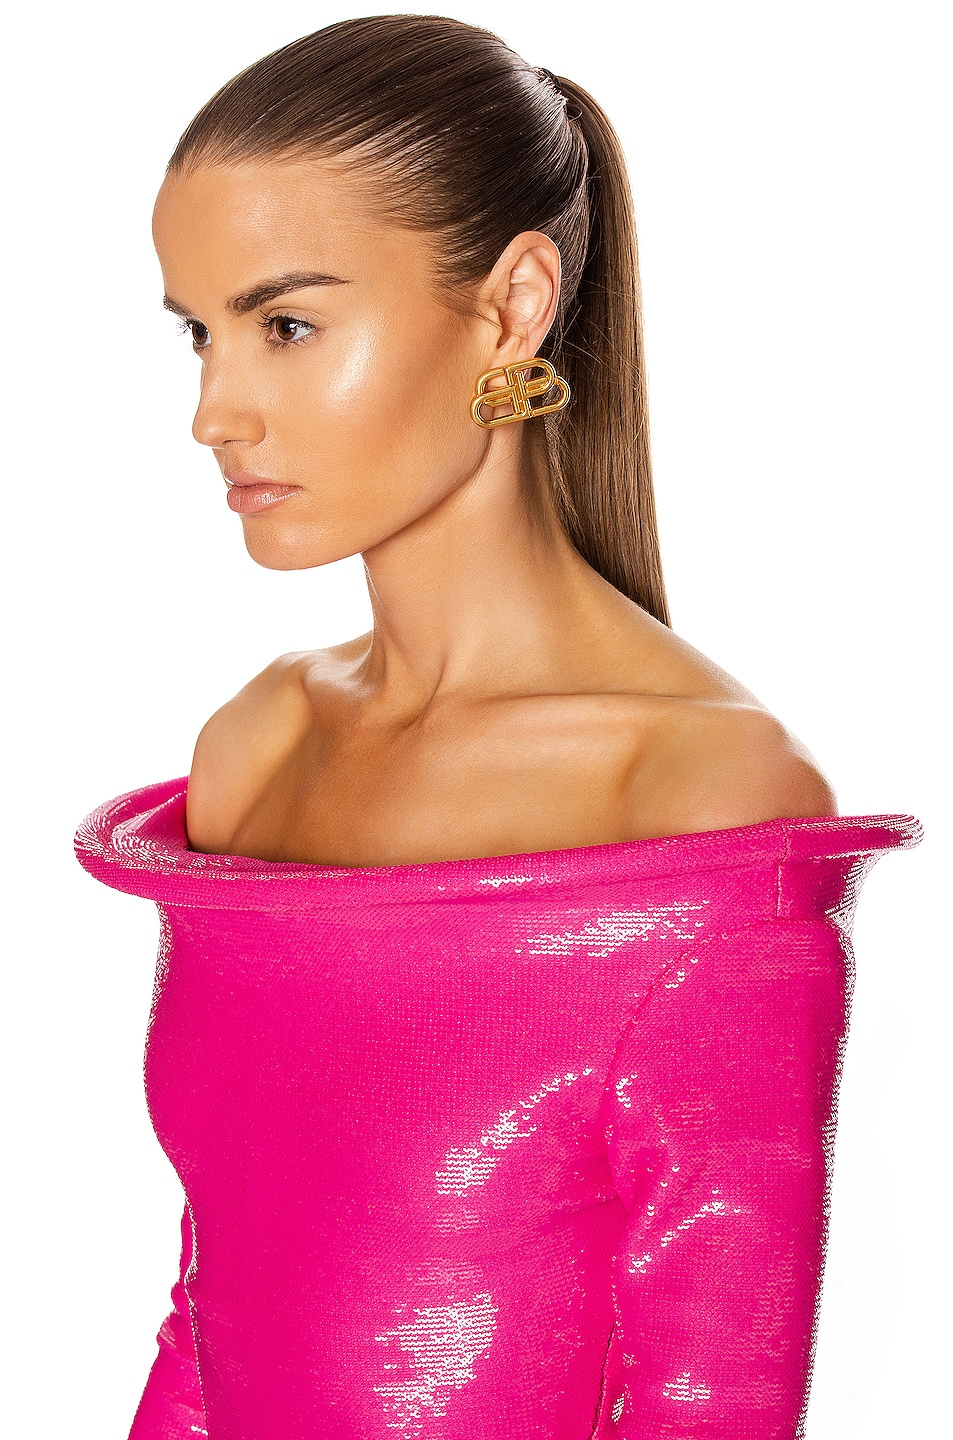 Image 6 of Balenciaga Sequin Ring Bodysuit Top in Fluo Pink